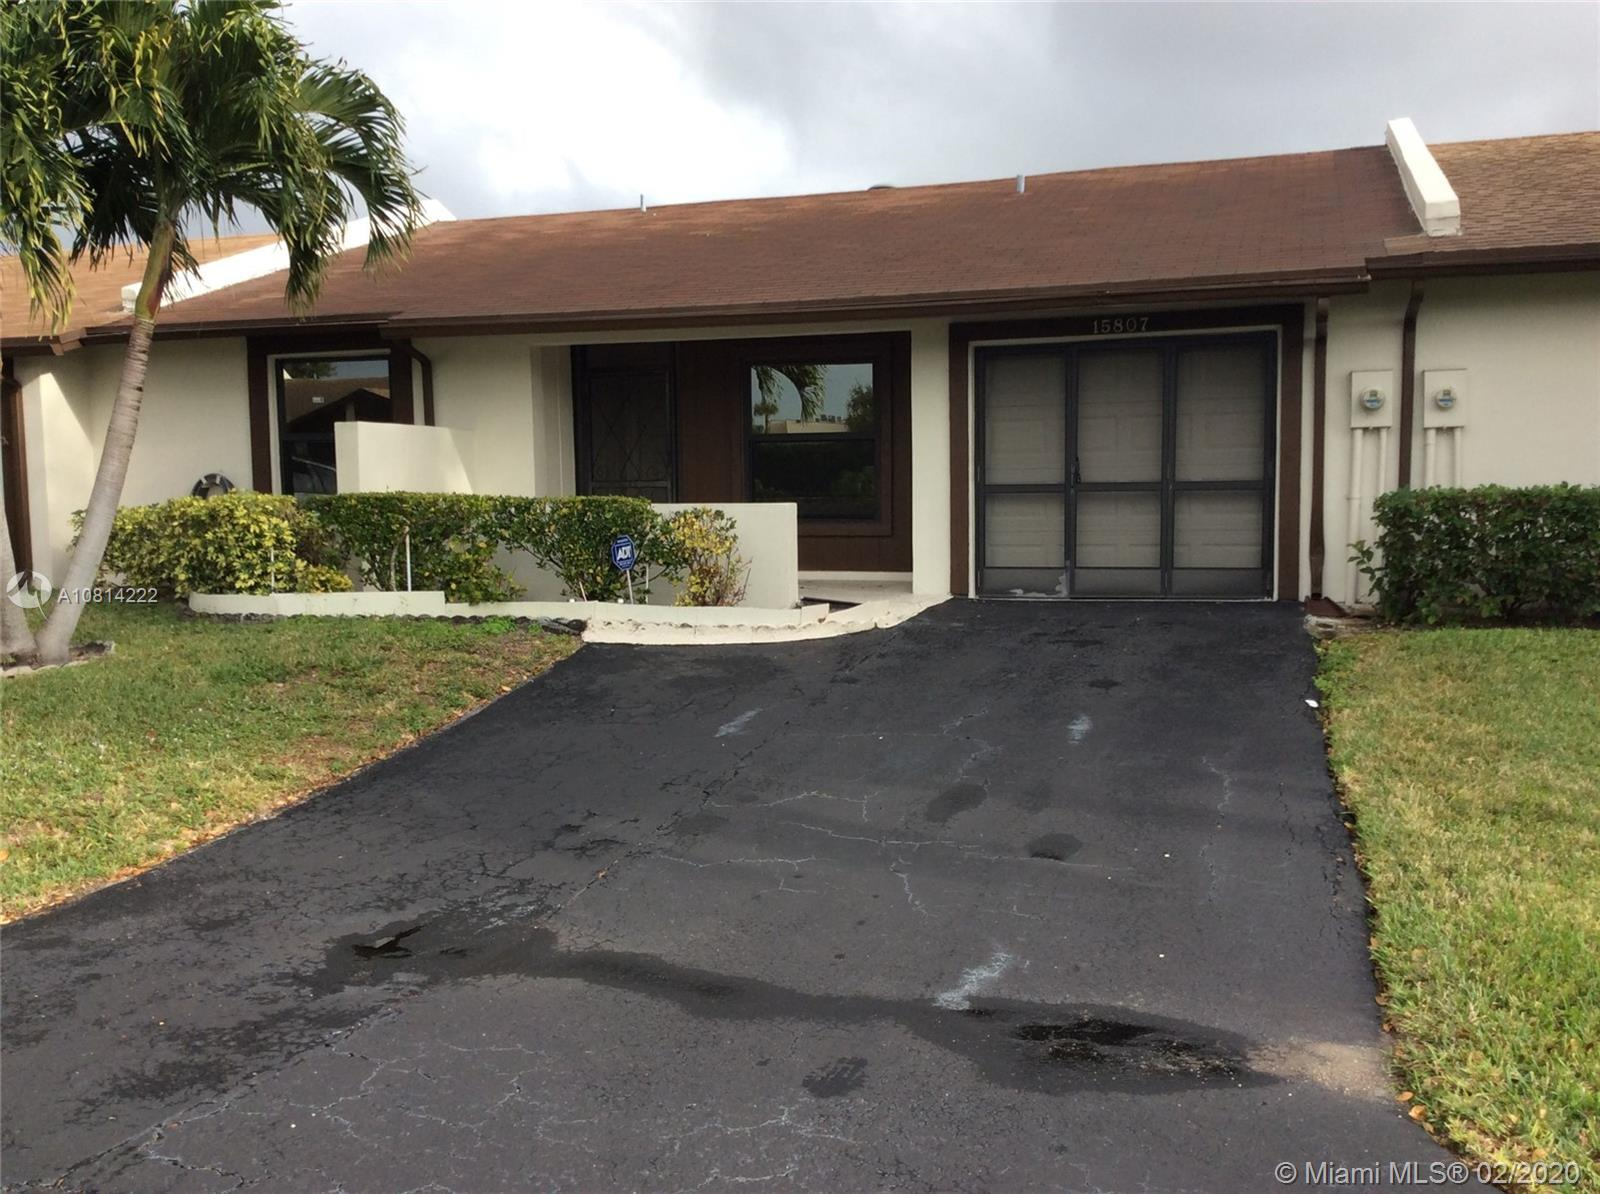 Property for sale at 15807 Forsythia Cir Unit: 15807, Delray Beach,  Florida 33484